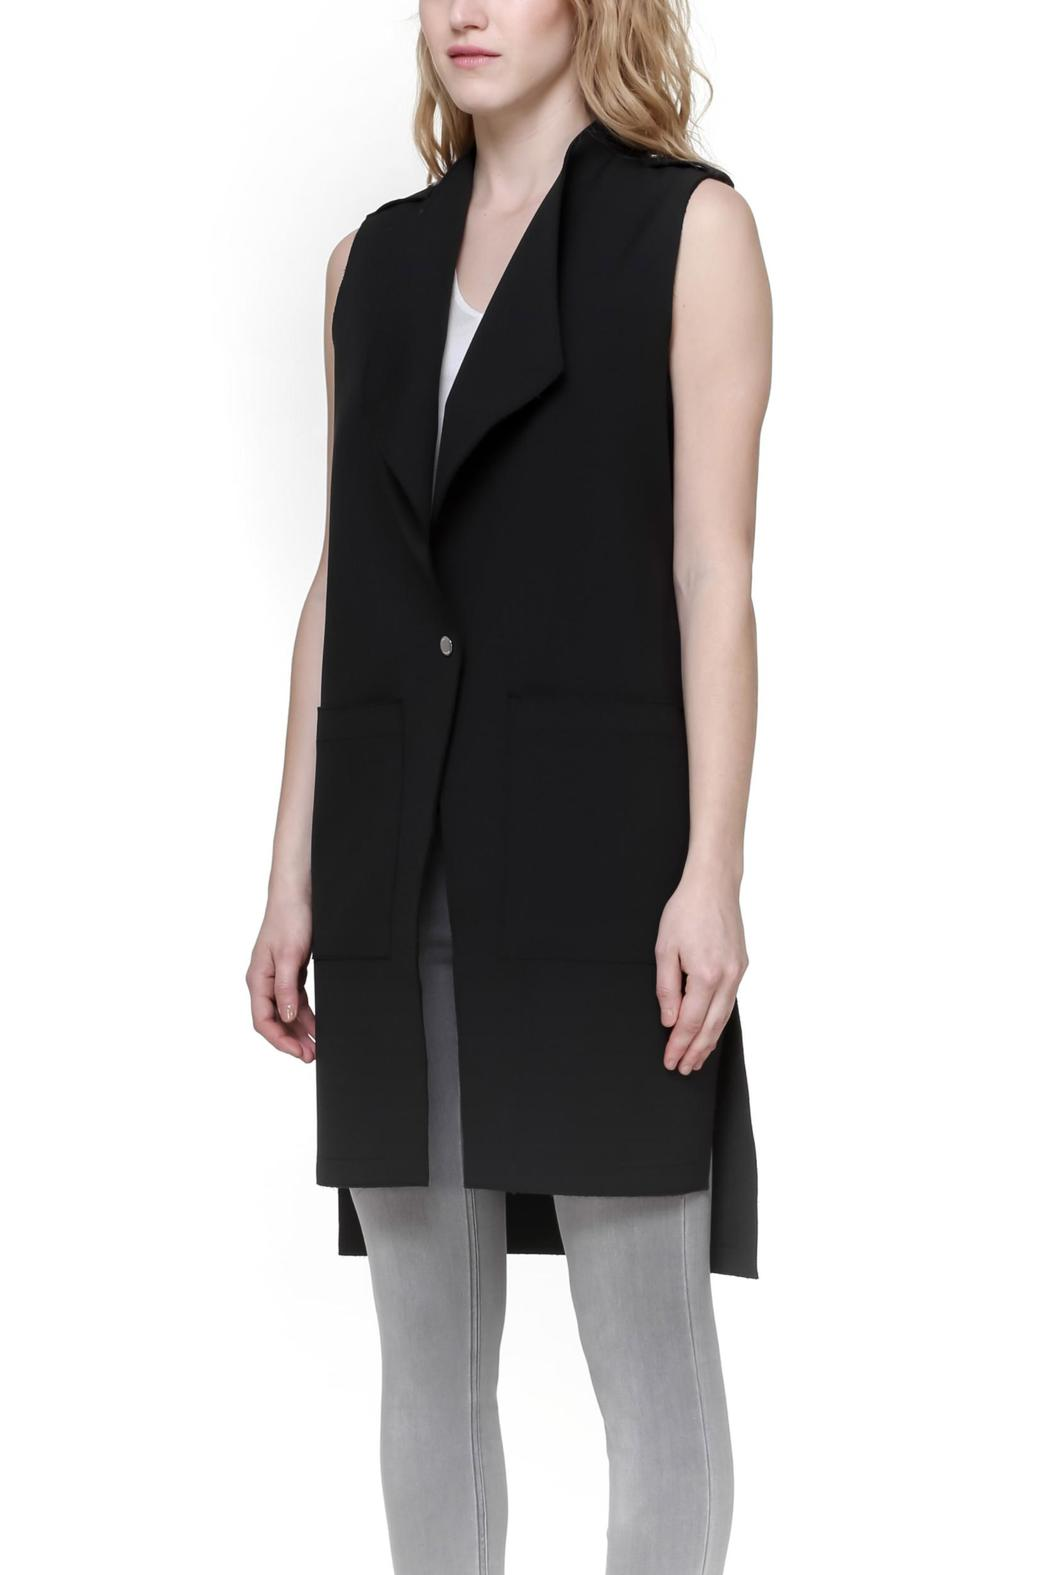 Soia & Kyo Kathryn Sleevless Vest - Side Cropped Image